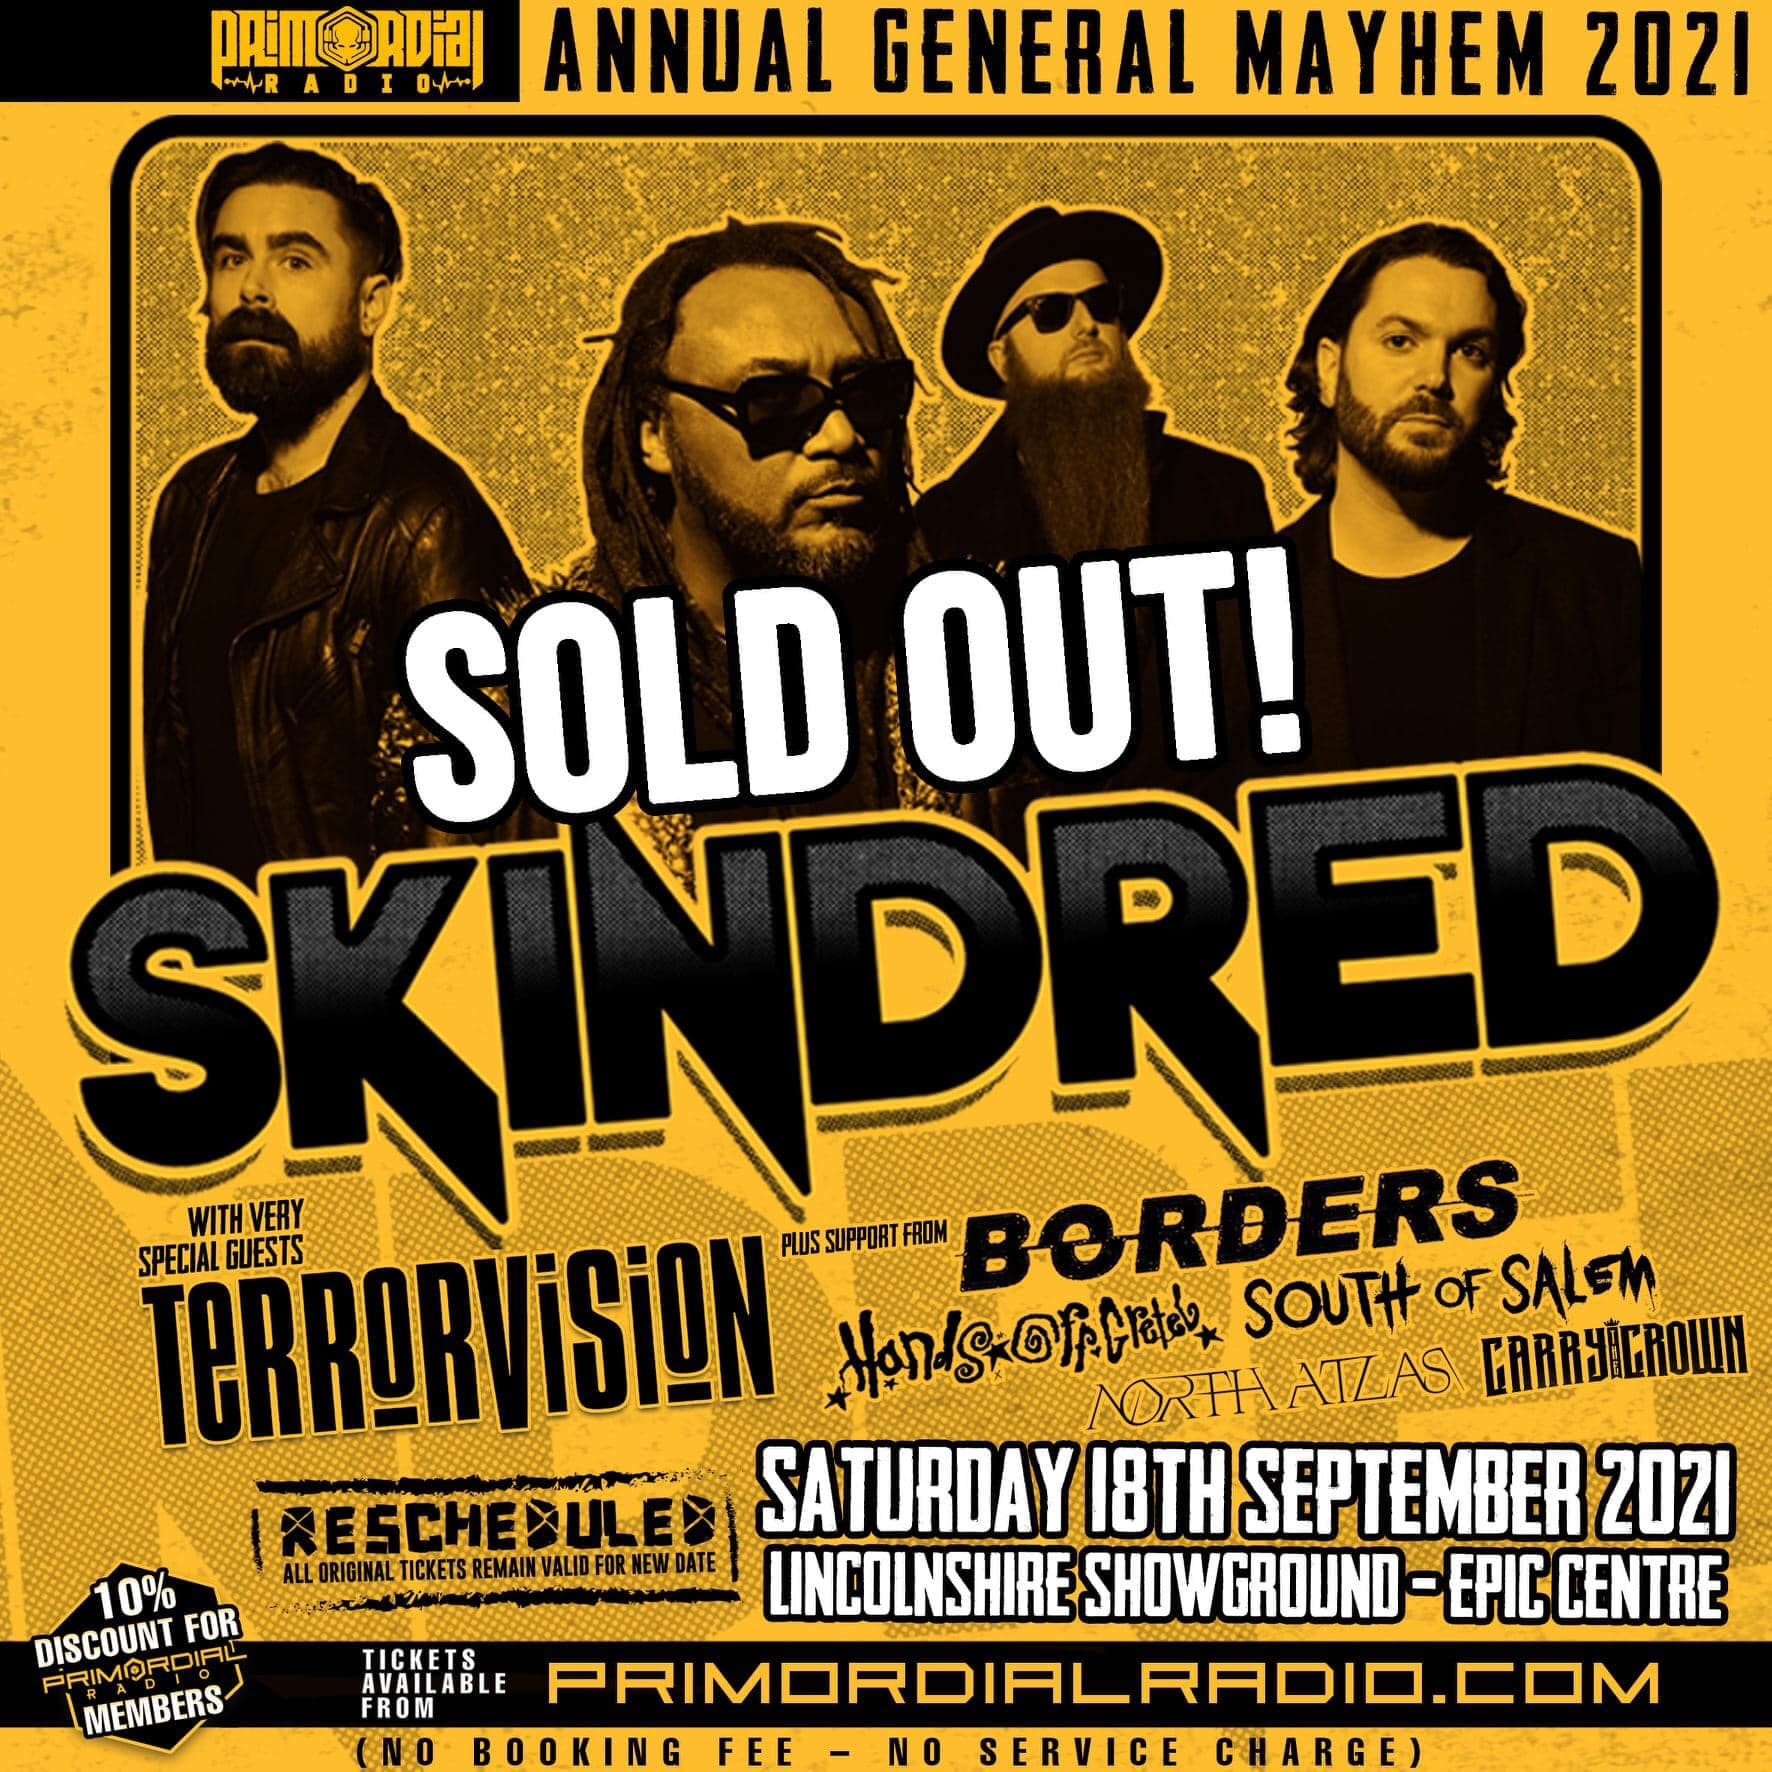 Primordial Radio AGM 2021 Sold Out